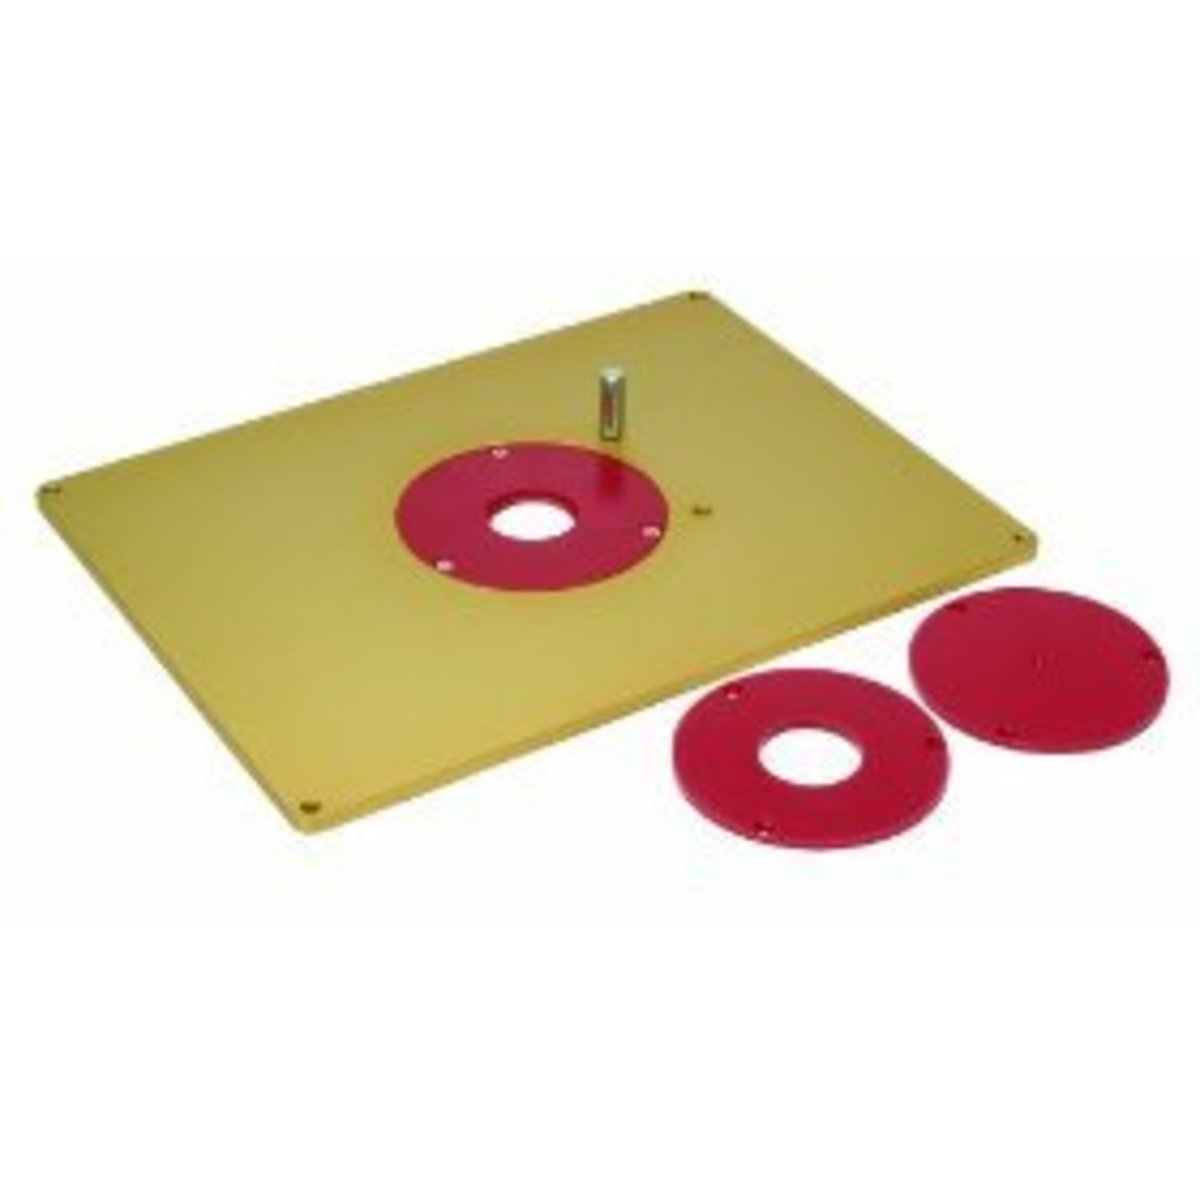 Router table insert plate sizes hubpages aluminum router plate keyboard keysfo Image collections